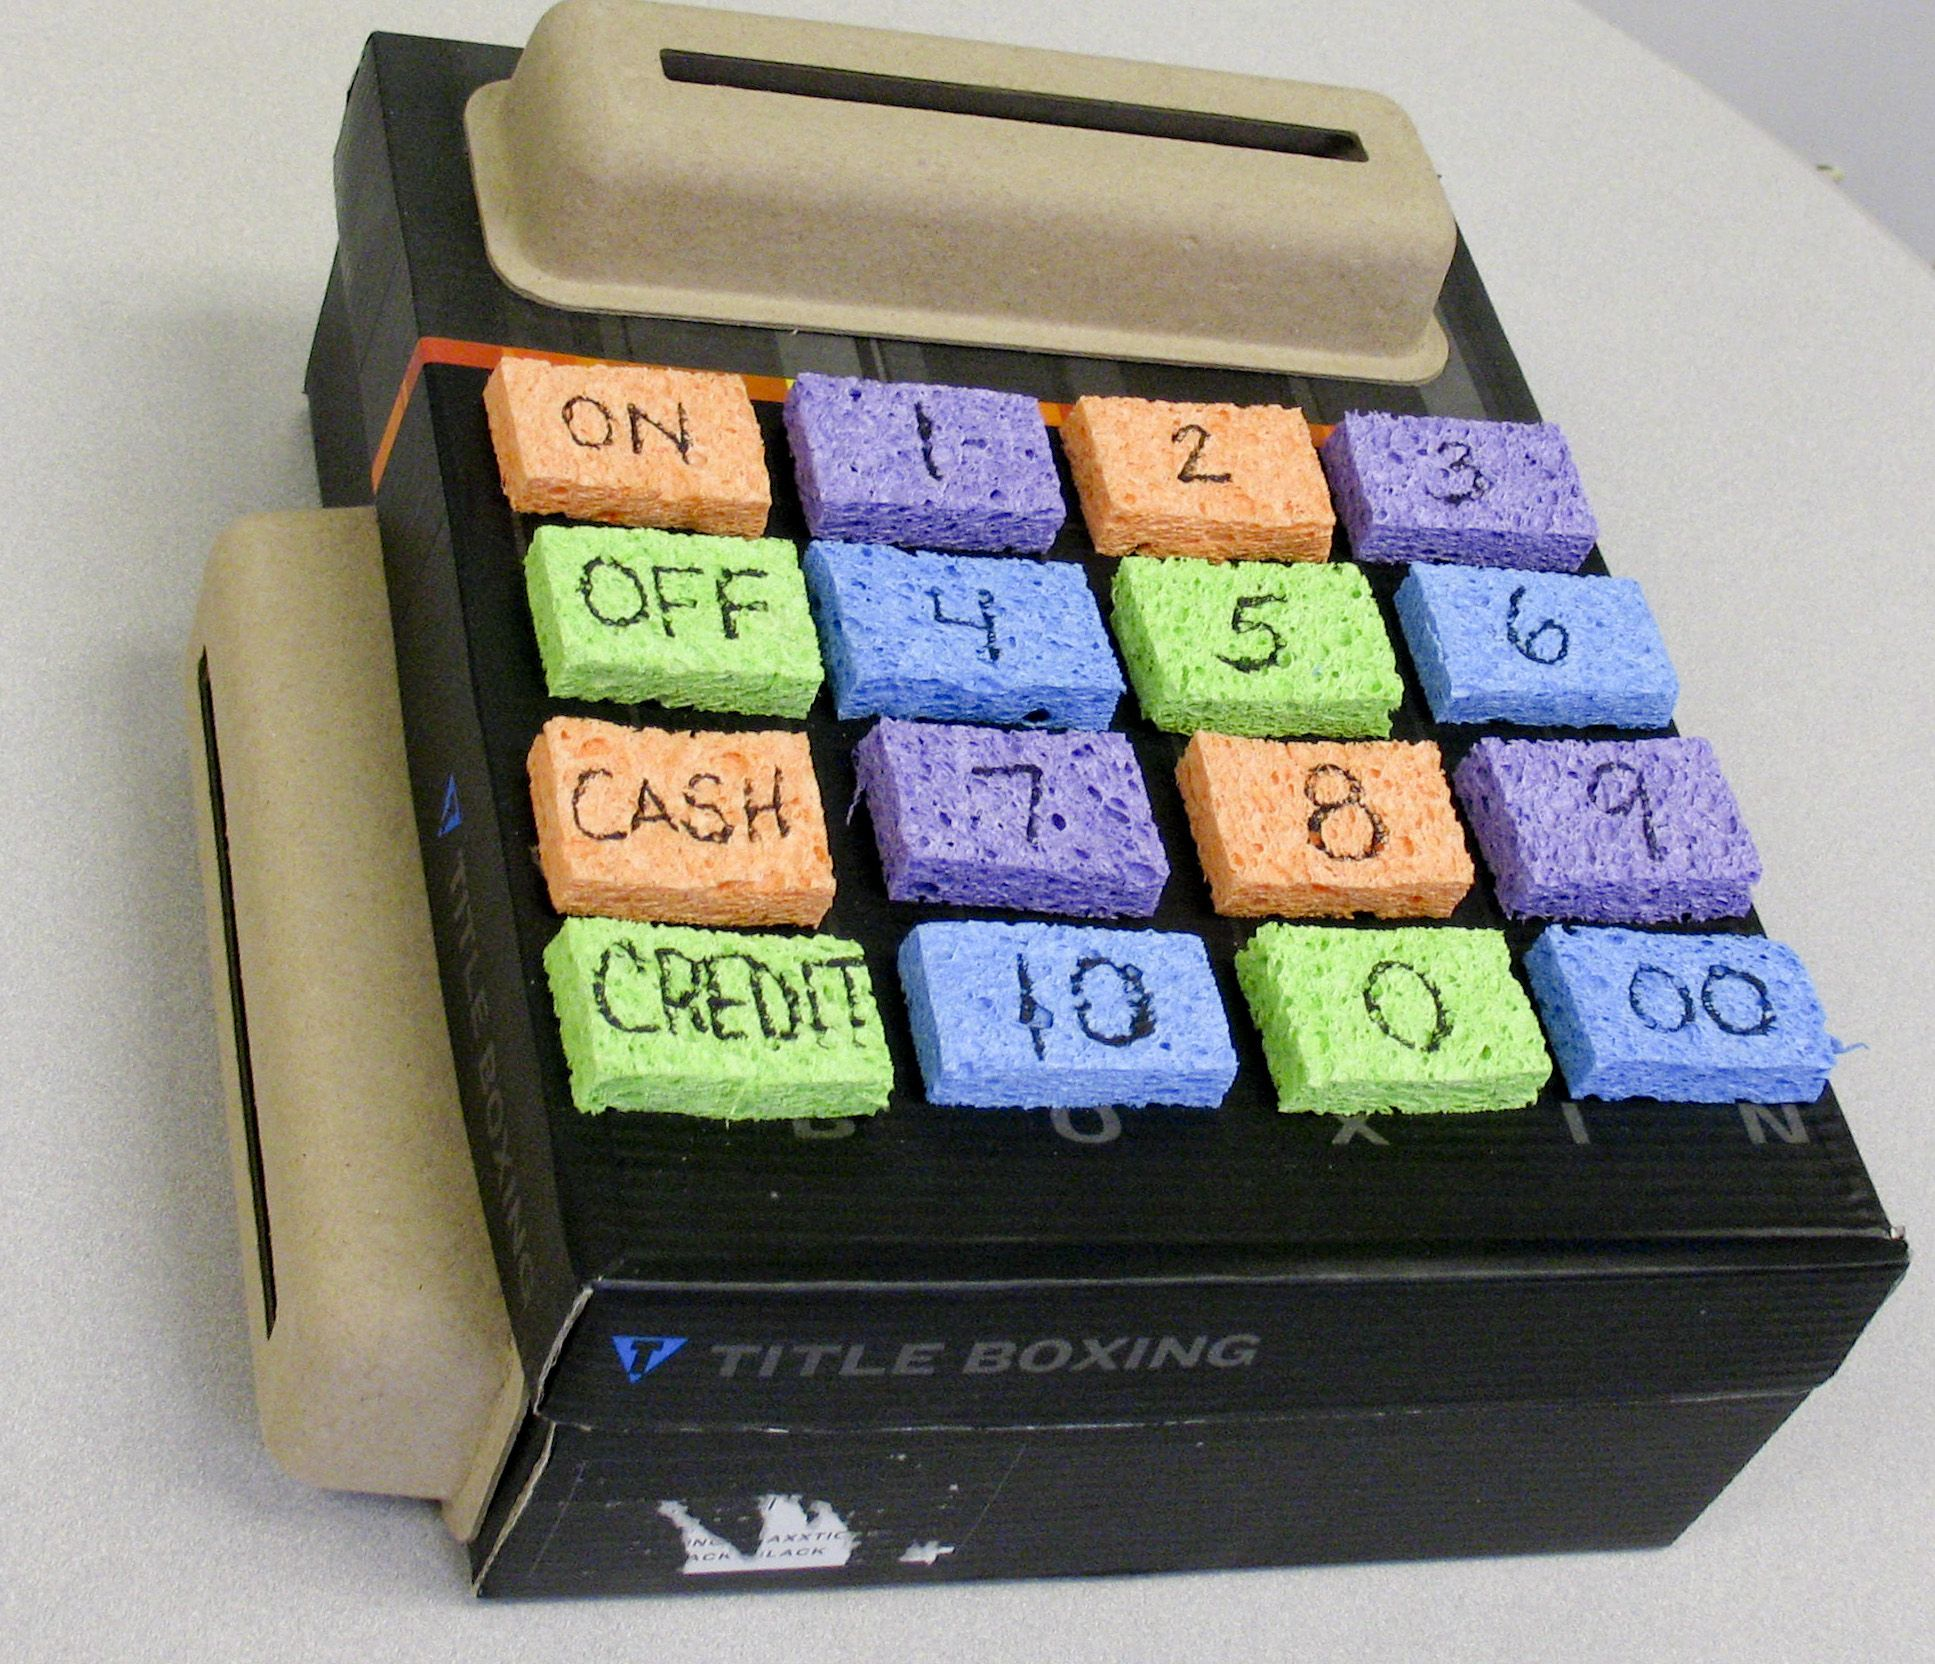 Child care solutions made this cash register out of a